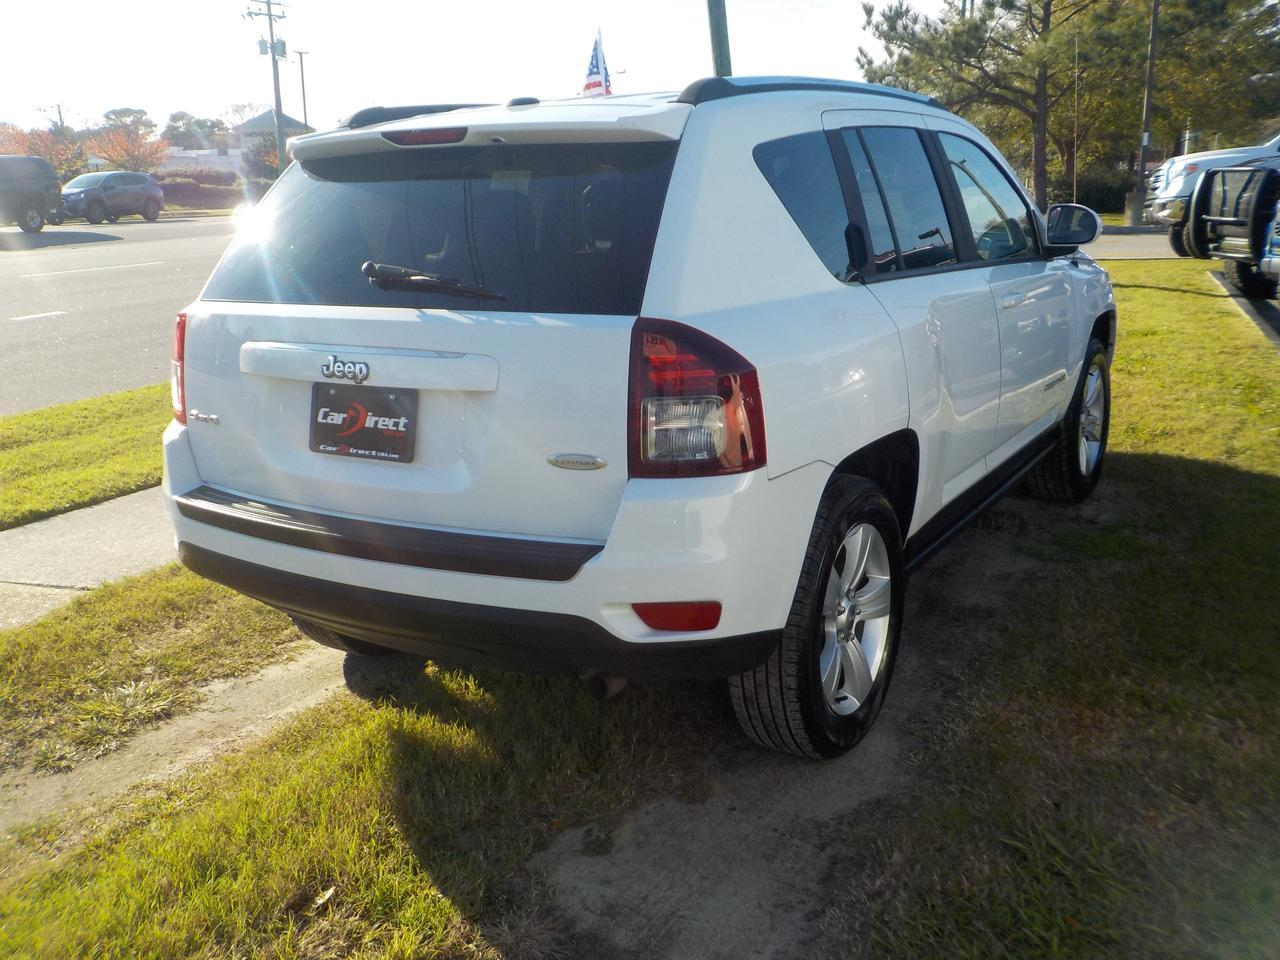 2014 JEEP COMPASS LATITUDE 4X4, LEATHER, HEATED SEATS, REMOTE START, BLUETOOTH, ONLY 55K MILES! Virginia Beach VA